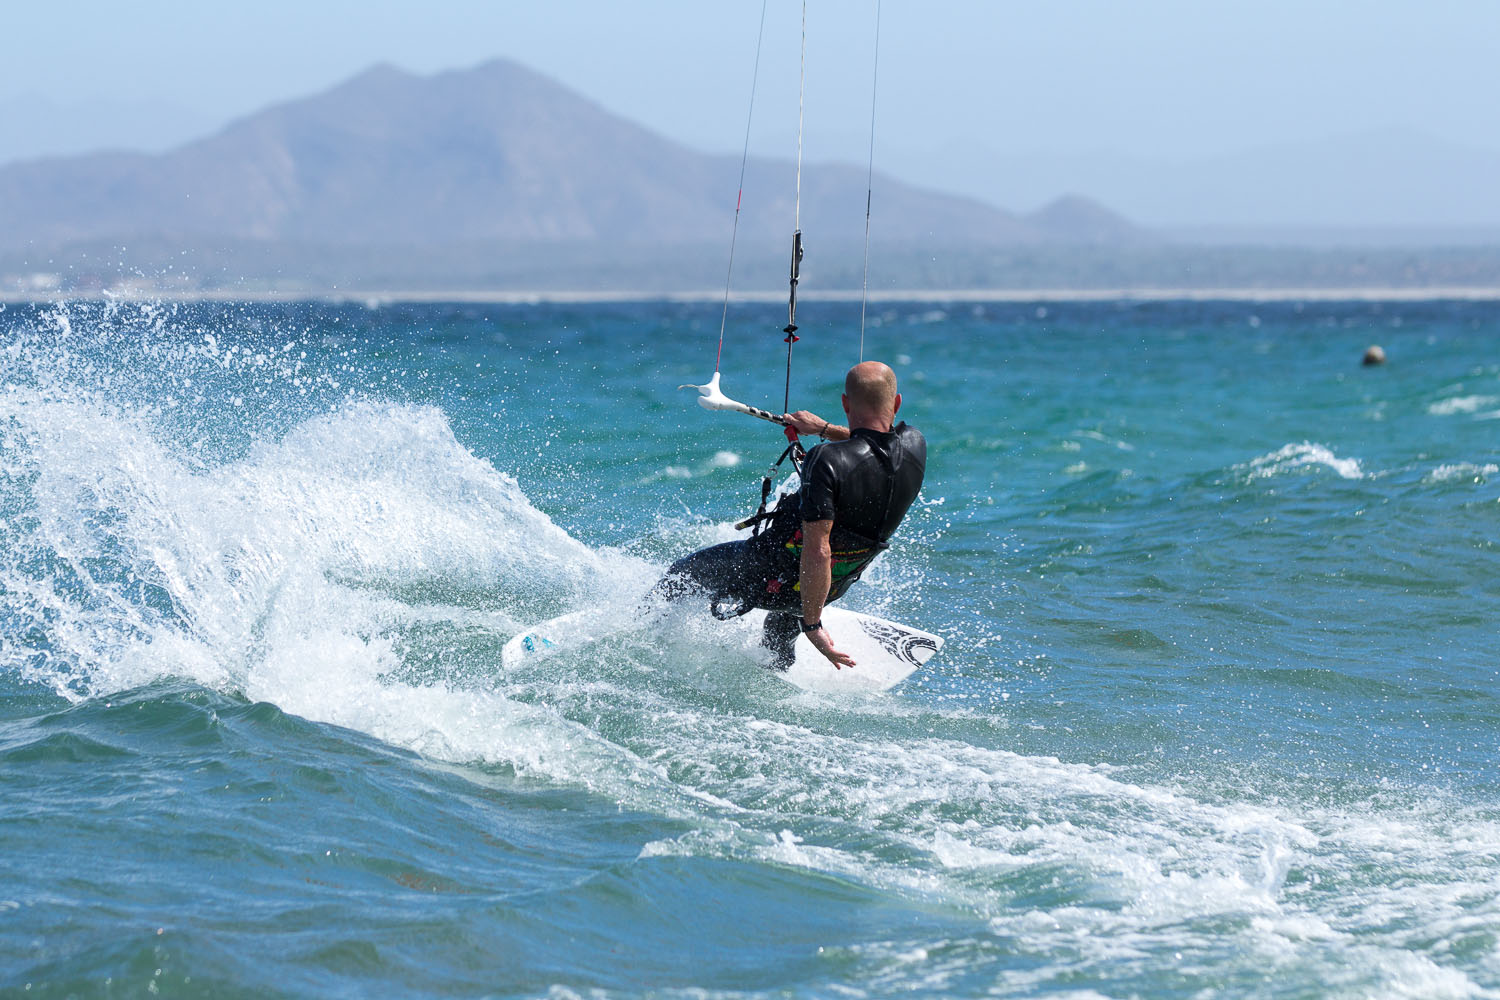 Kite surf wave riding